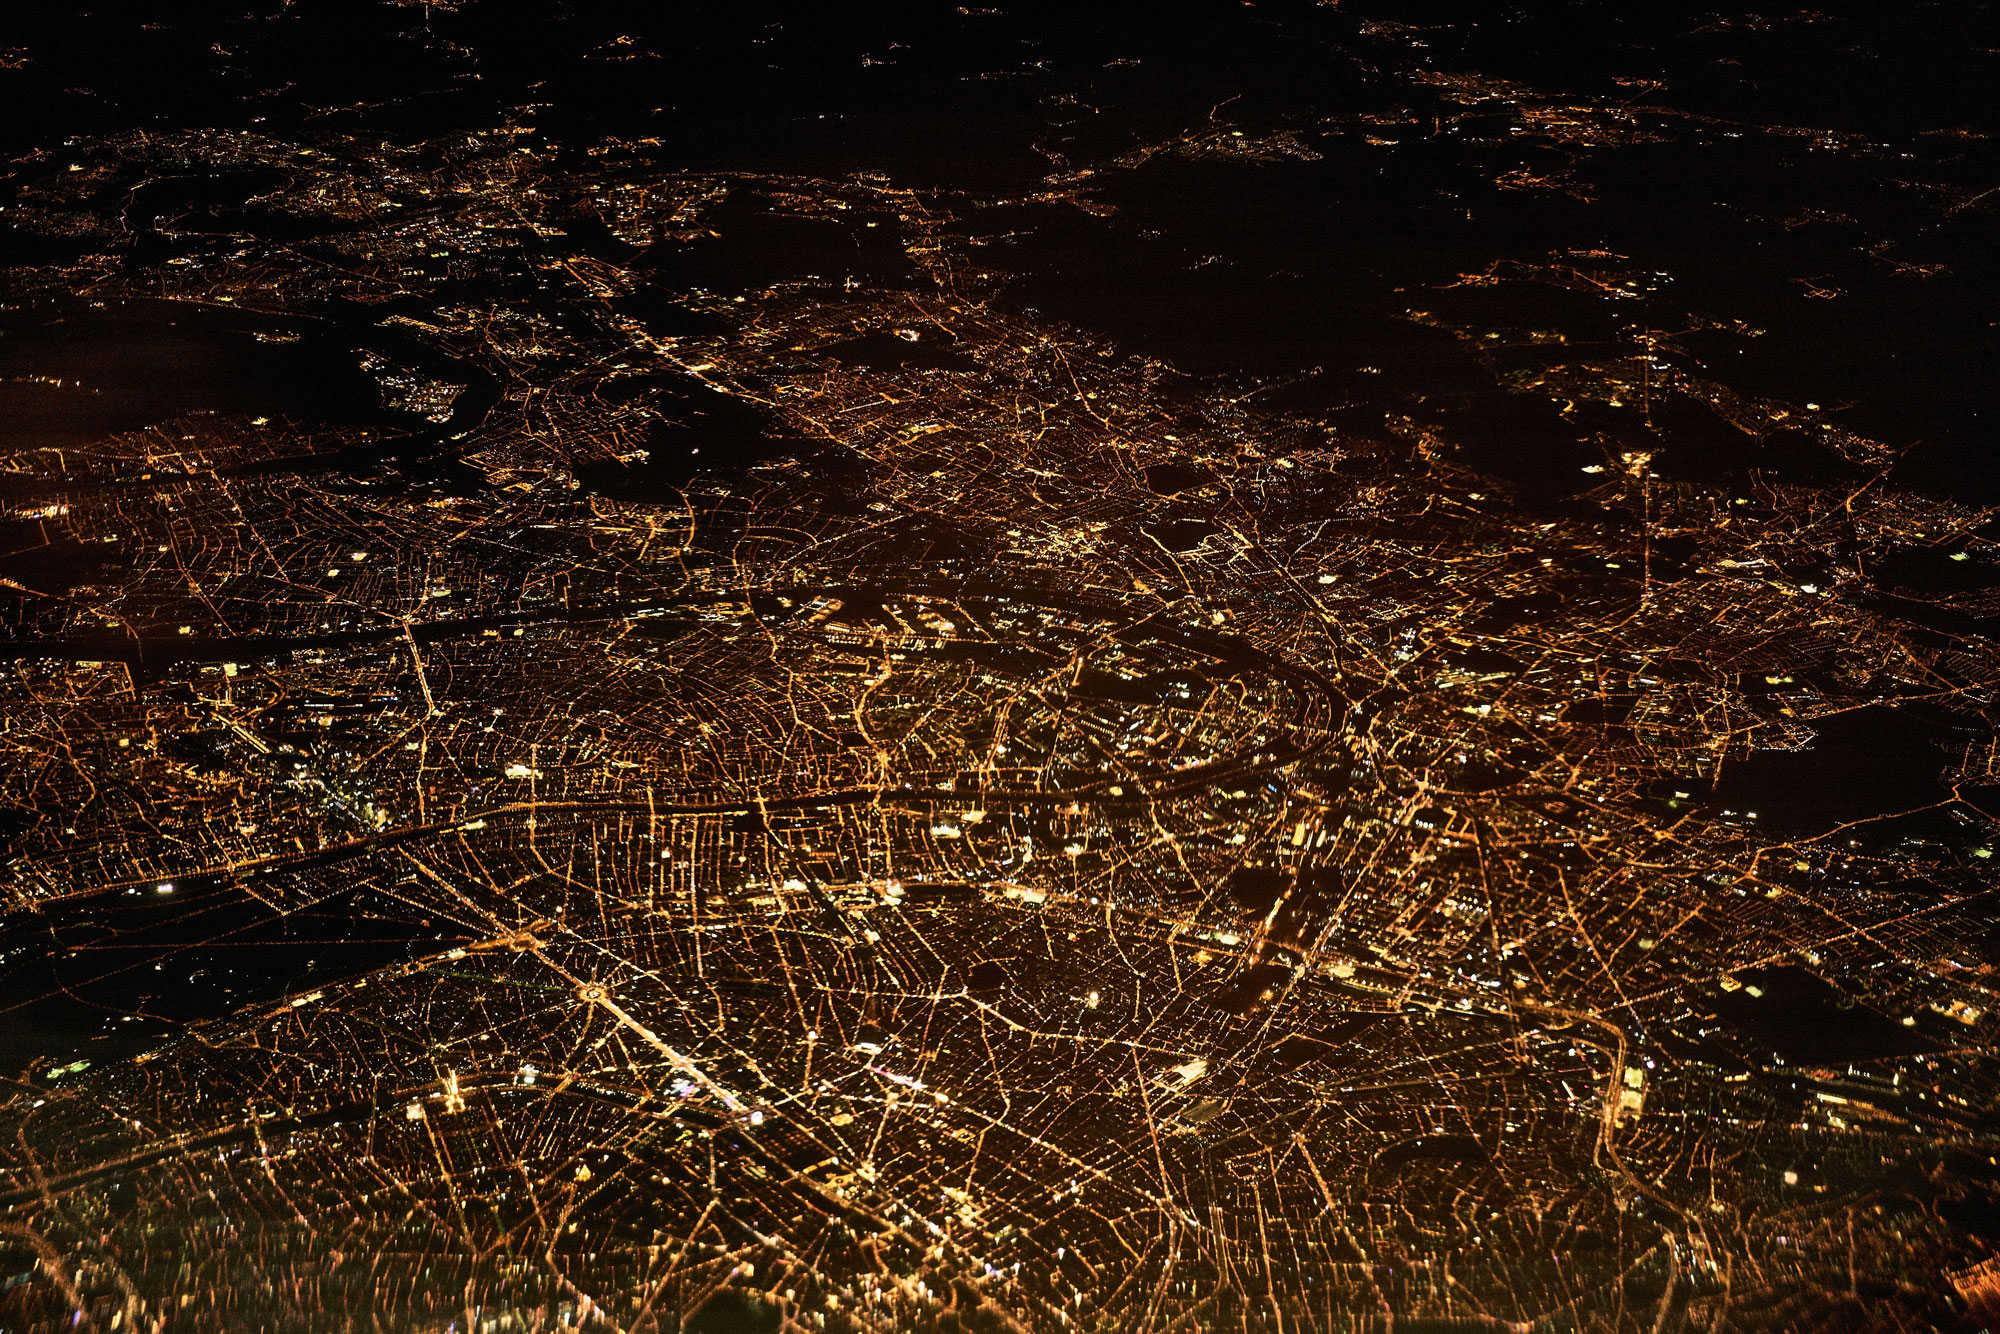 view of connected glowing streets from a high altitude